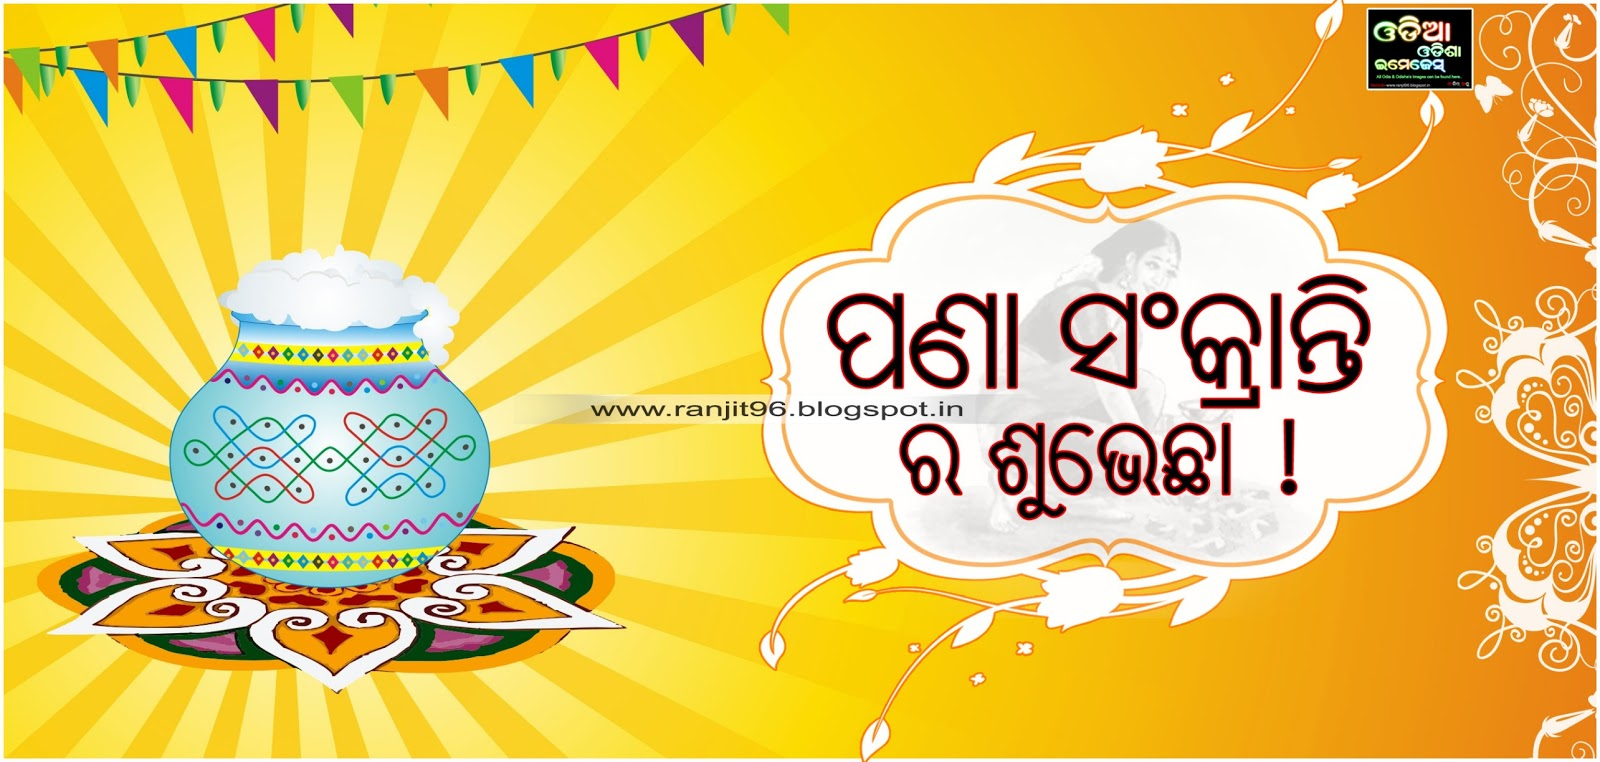 wish you all happy pana sankranti and odia new year